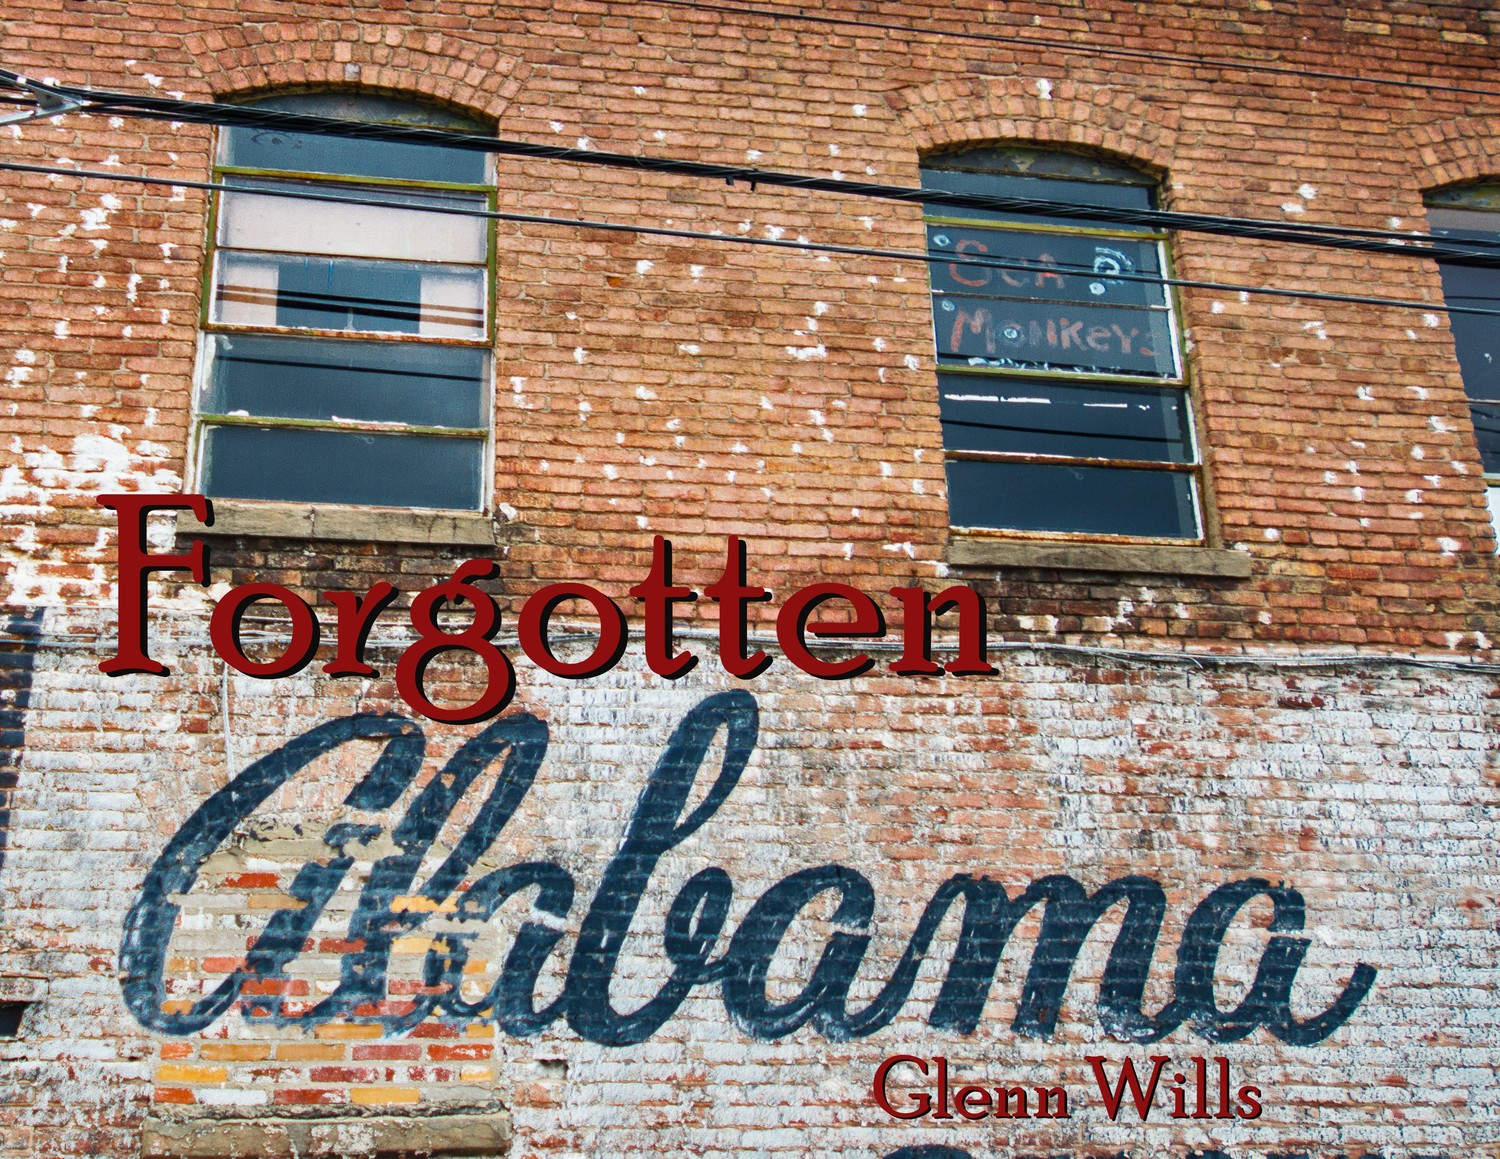 Glenn Wills coming to Pinson Public Library to share Alabama's forgotten history